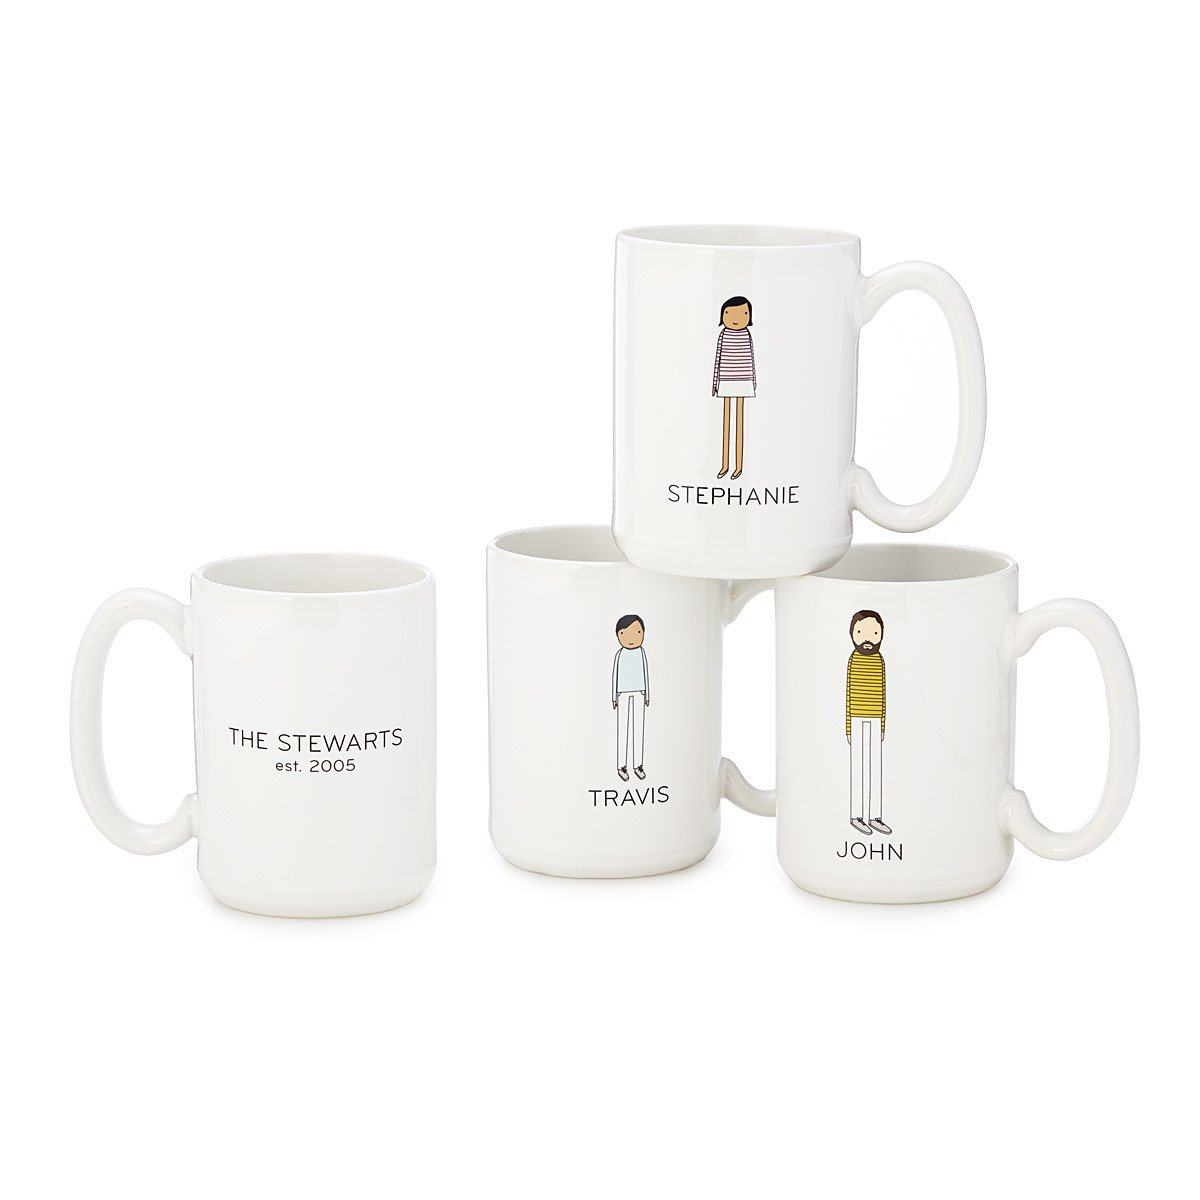 Characterize your family's unique collection of individuals with these personalized mugs featuring the sophisticated simplicity of Mary and Shelly Klein's artwork. One side features the artists' depiction of individual family members, personalized through your choices of skin tone, hair, clothing color, and the mug owner's first name, while the other displays your family name and year established (optional). Create a set to celebrate the individuals connected through your family ties, whether you're all around the same table, or enjoying coffee in different time zones. Starting at $30 on Uncommongood.com. (Image:{ }Uncommongoods.com){ }